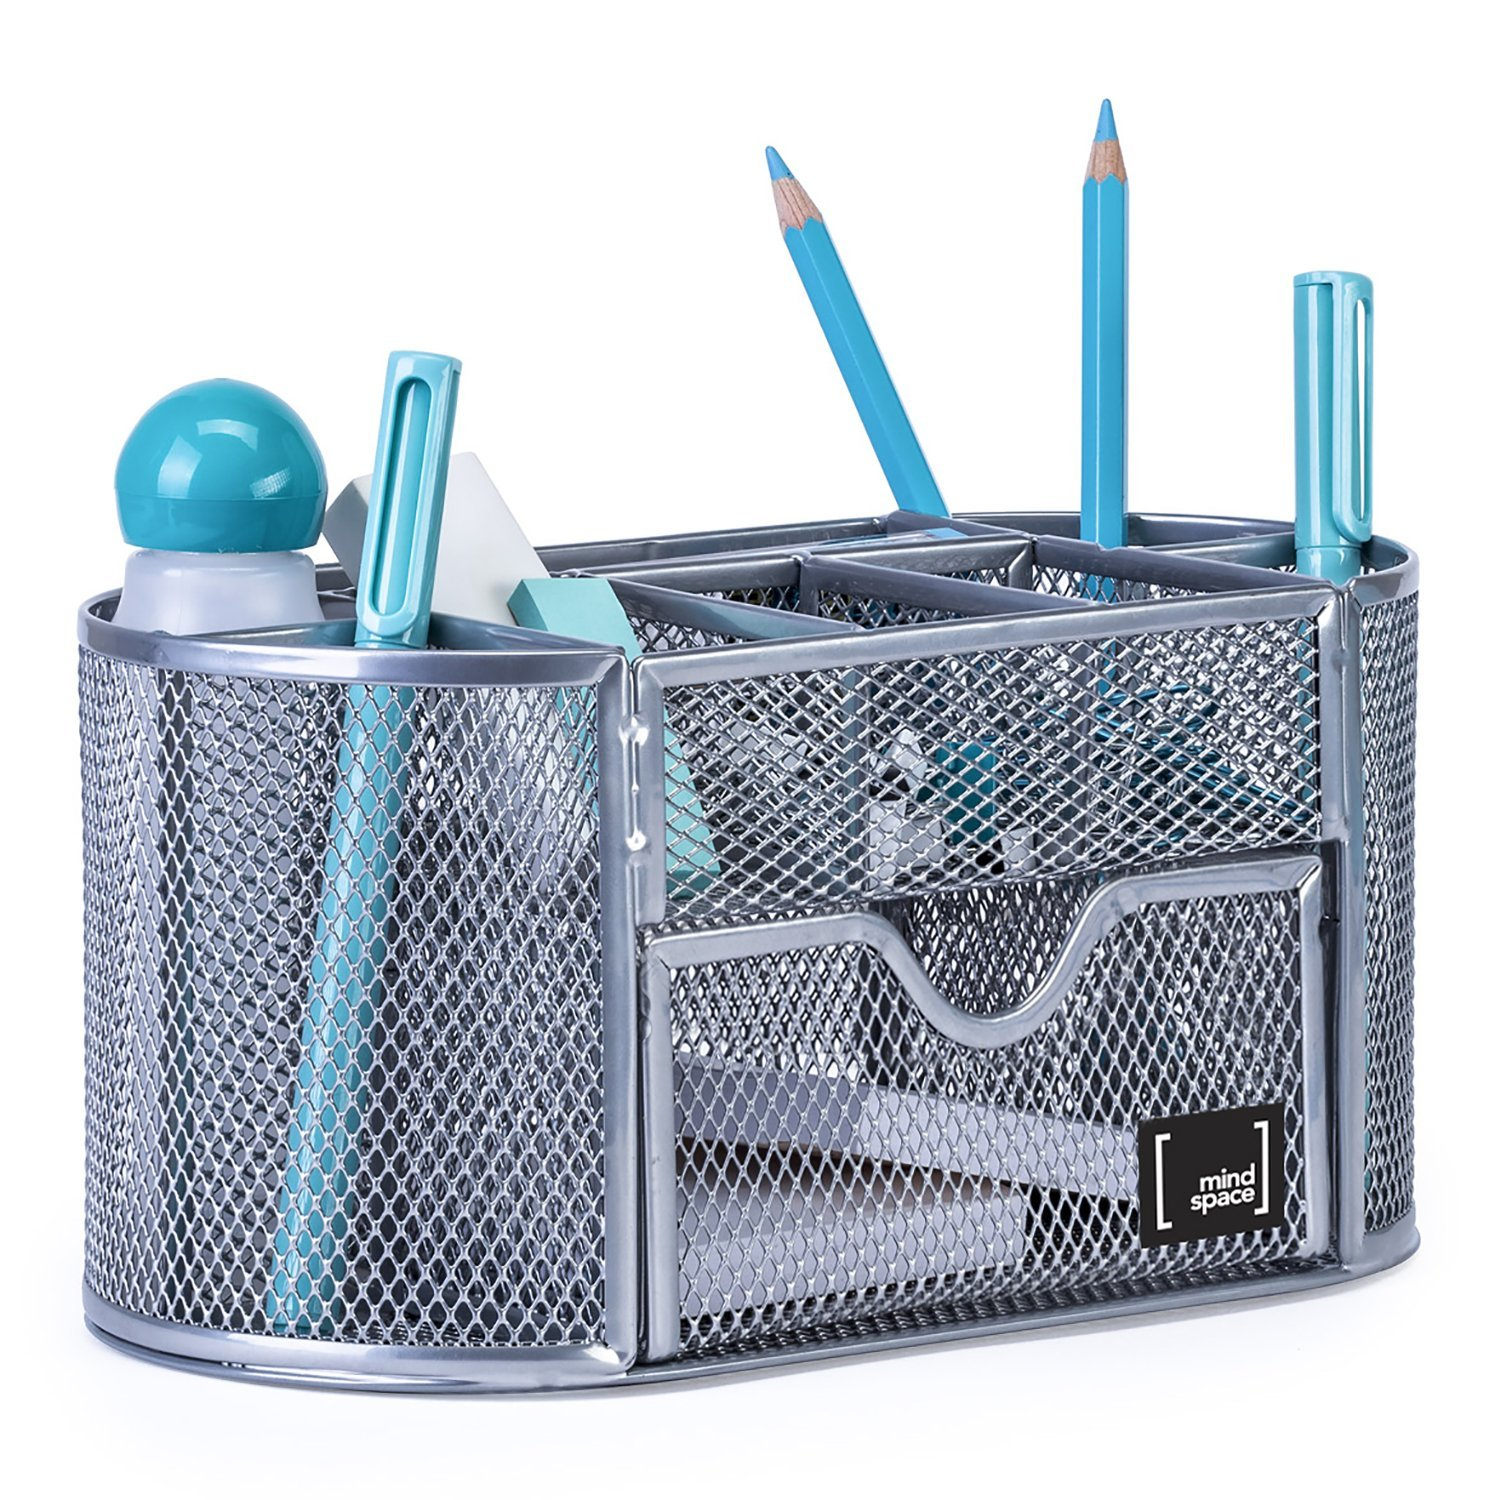 Office Supplies Desk Organizer by Mindspace, 8 Compartments + Drawer   The Mesh Collection, Silver